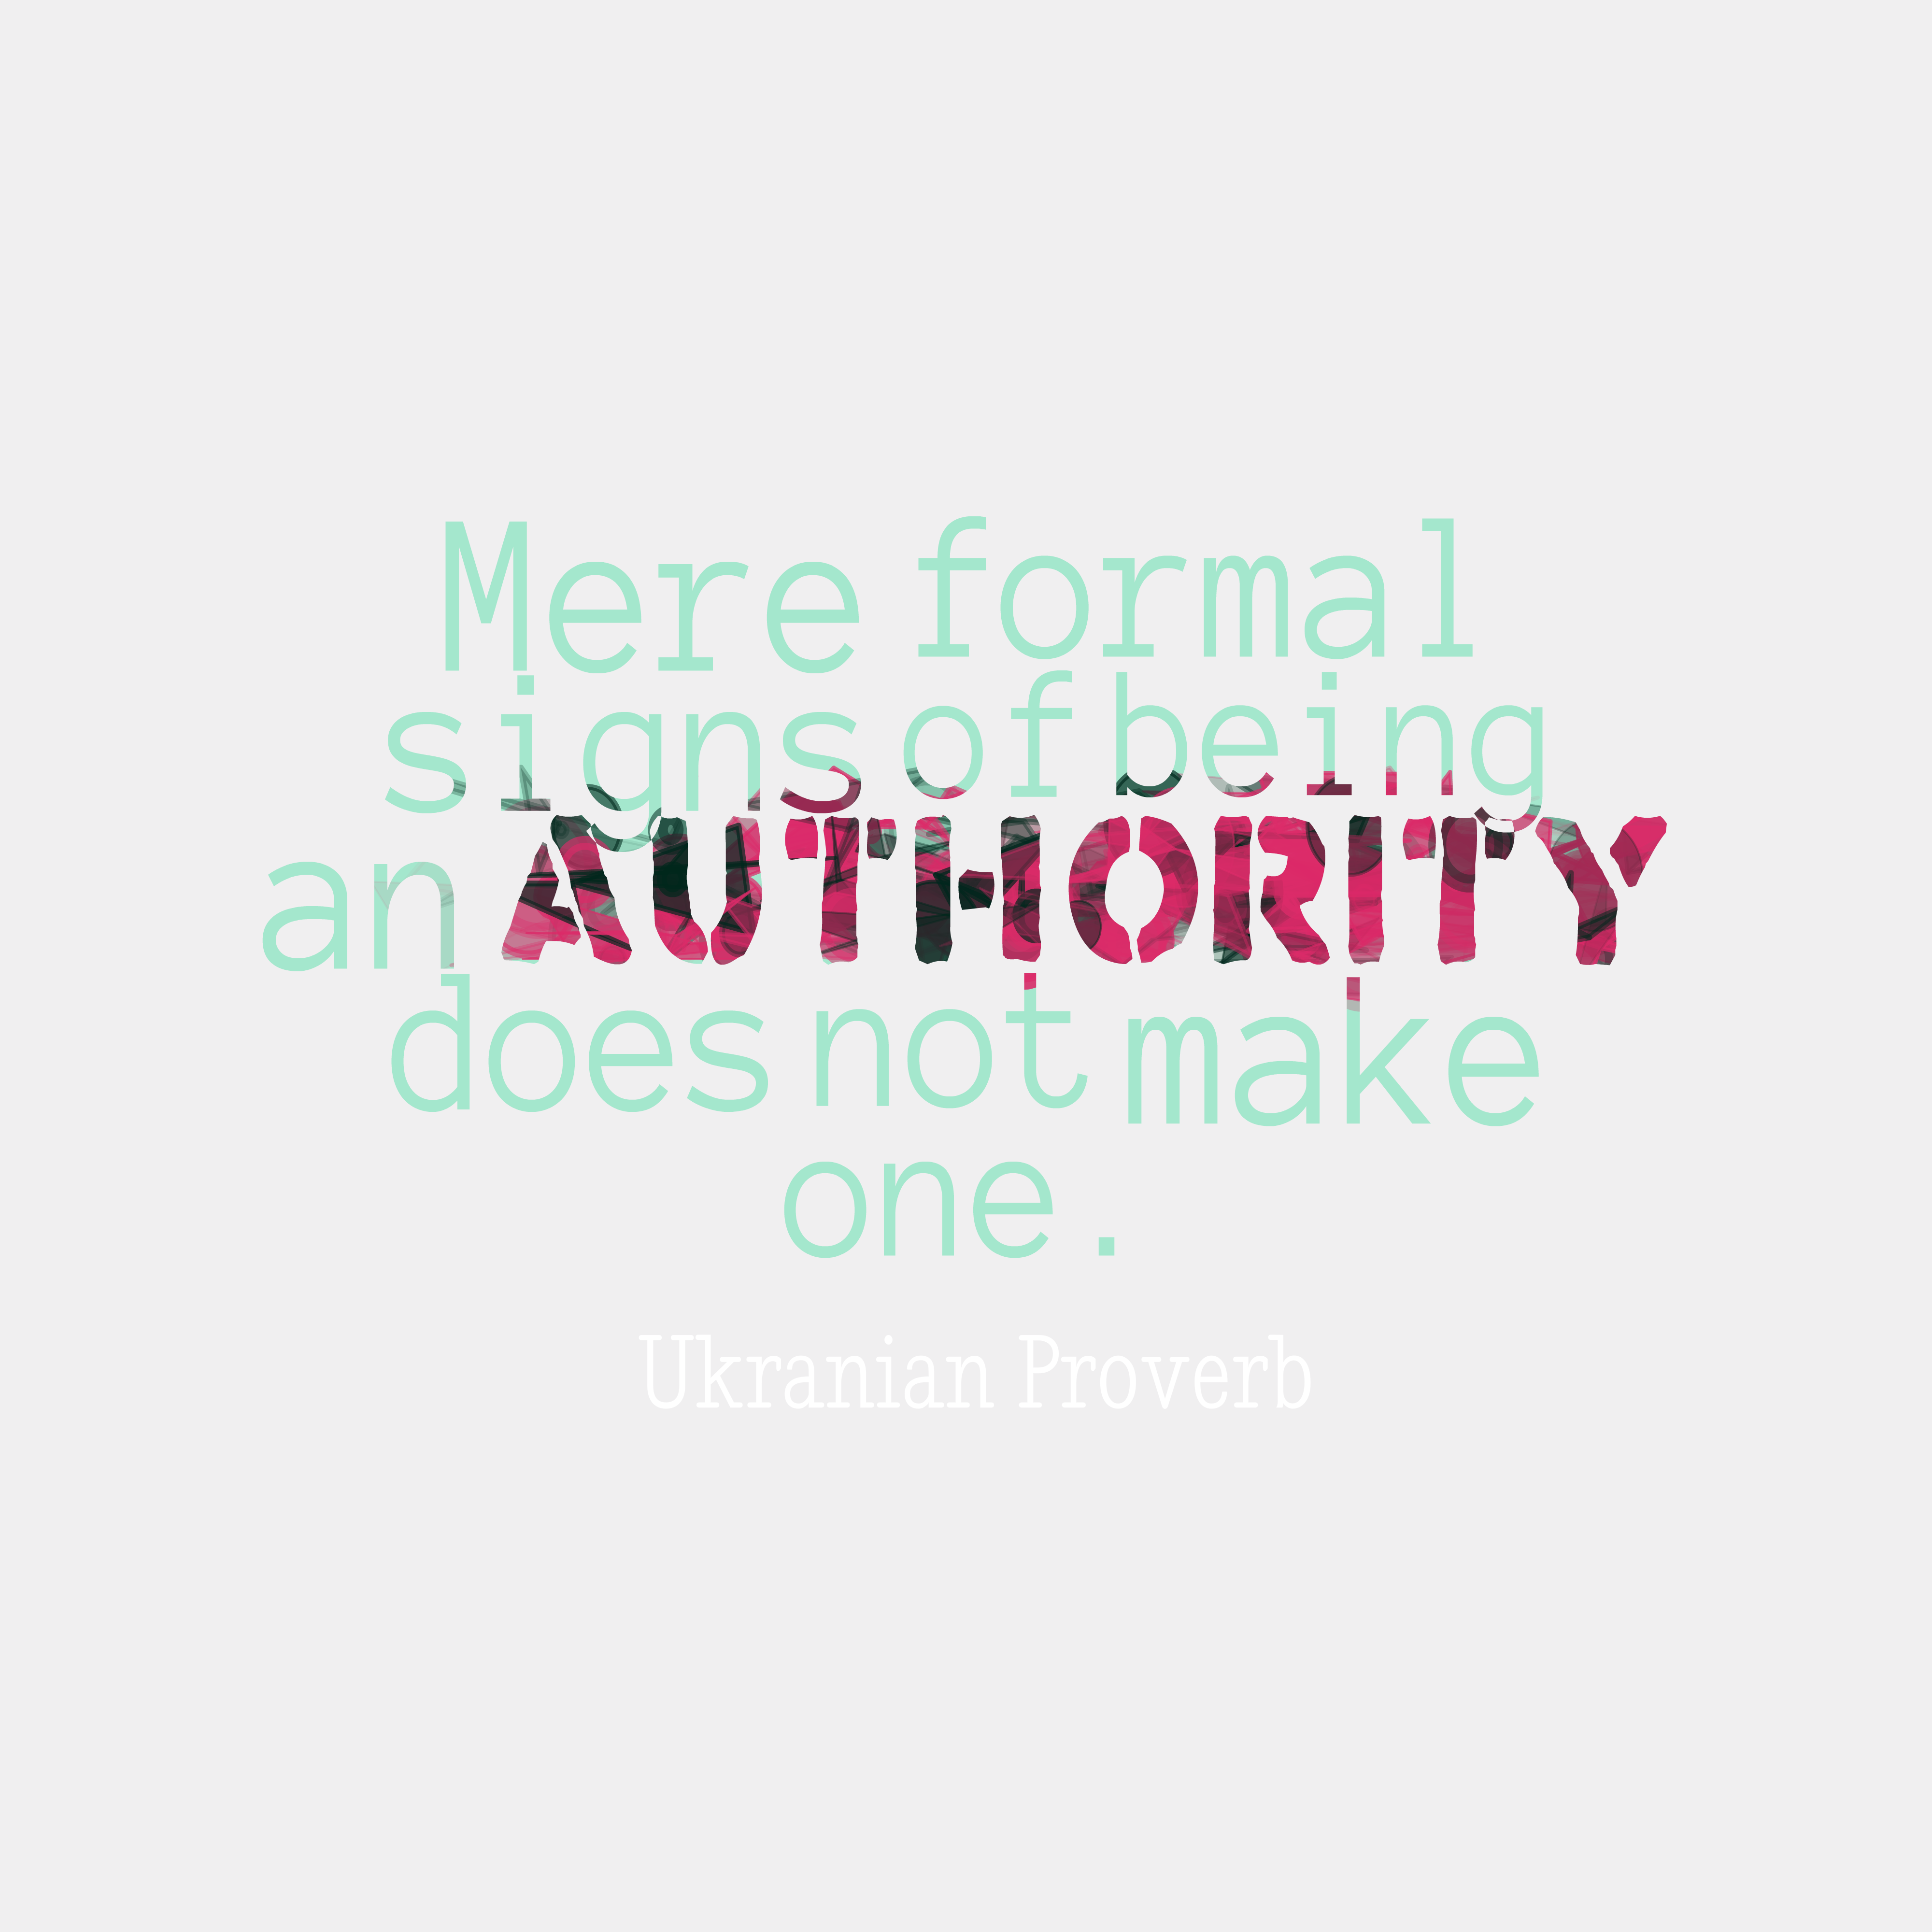 Quotes image of Mere formal signs of being an authority does not make one.